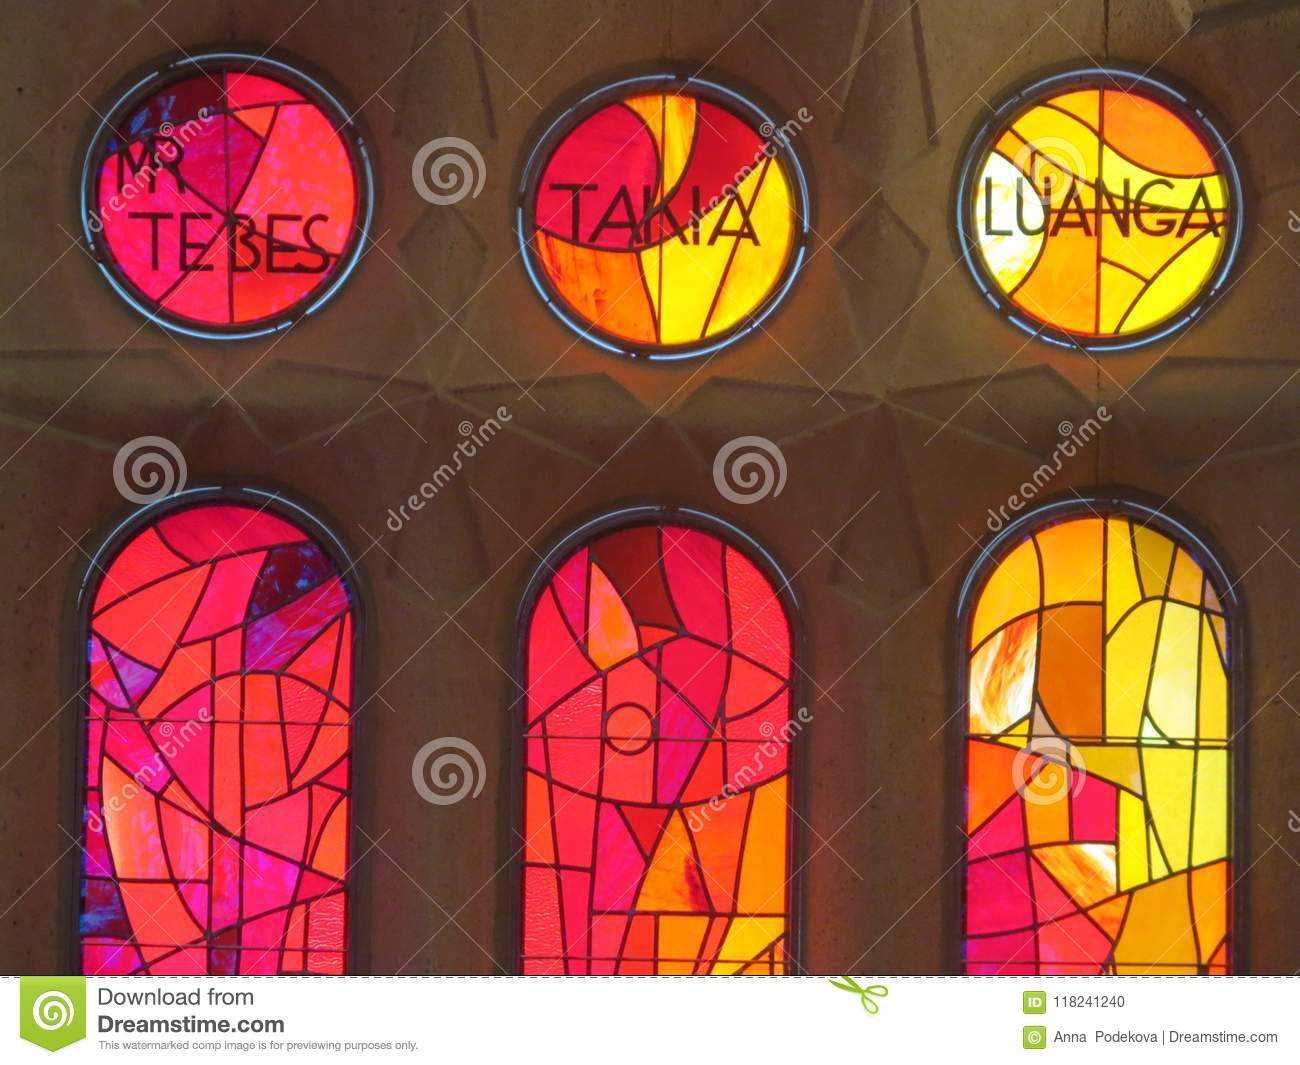 Sagrada familia cathedral colored window pane stained glass